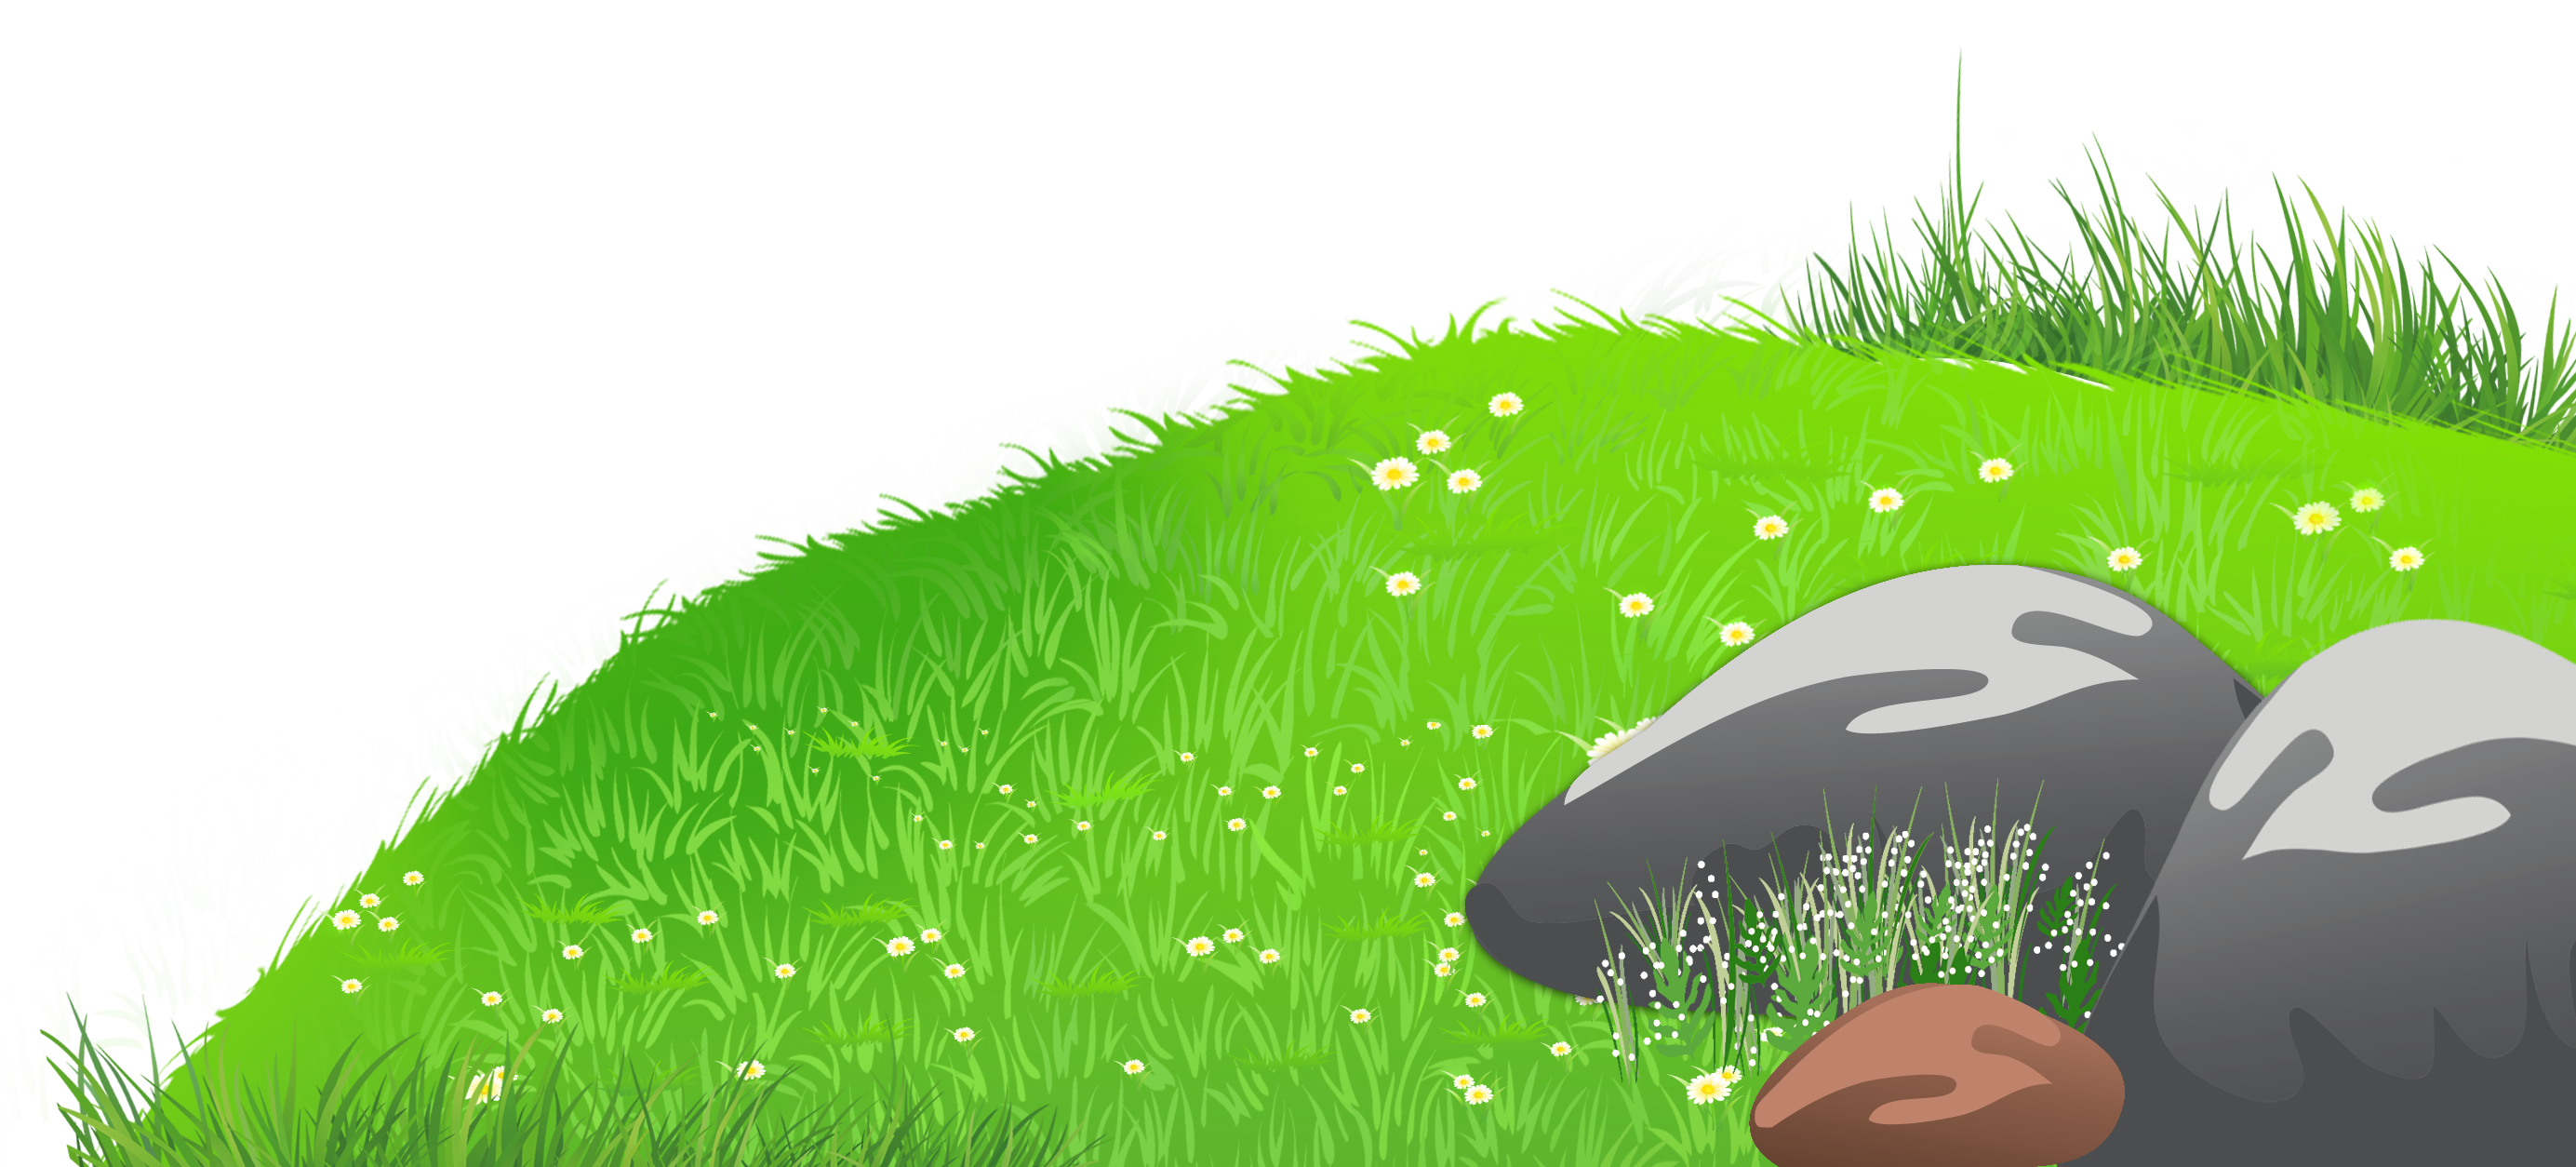 Grass with stones and. Clipart mountain cute